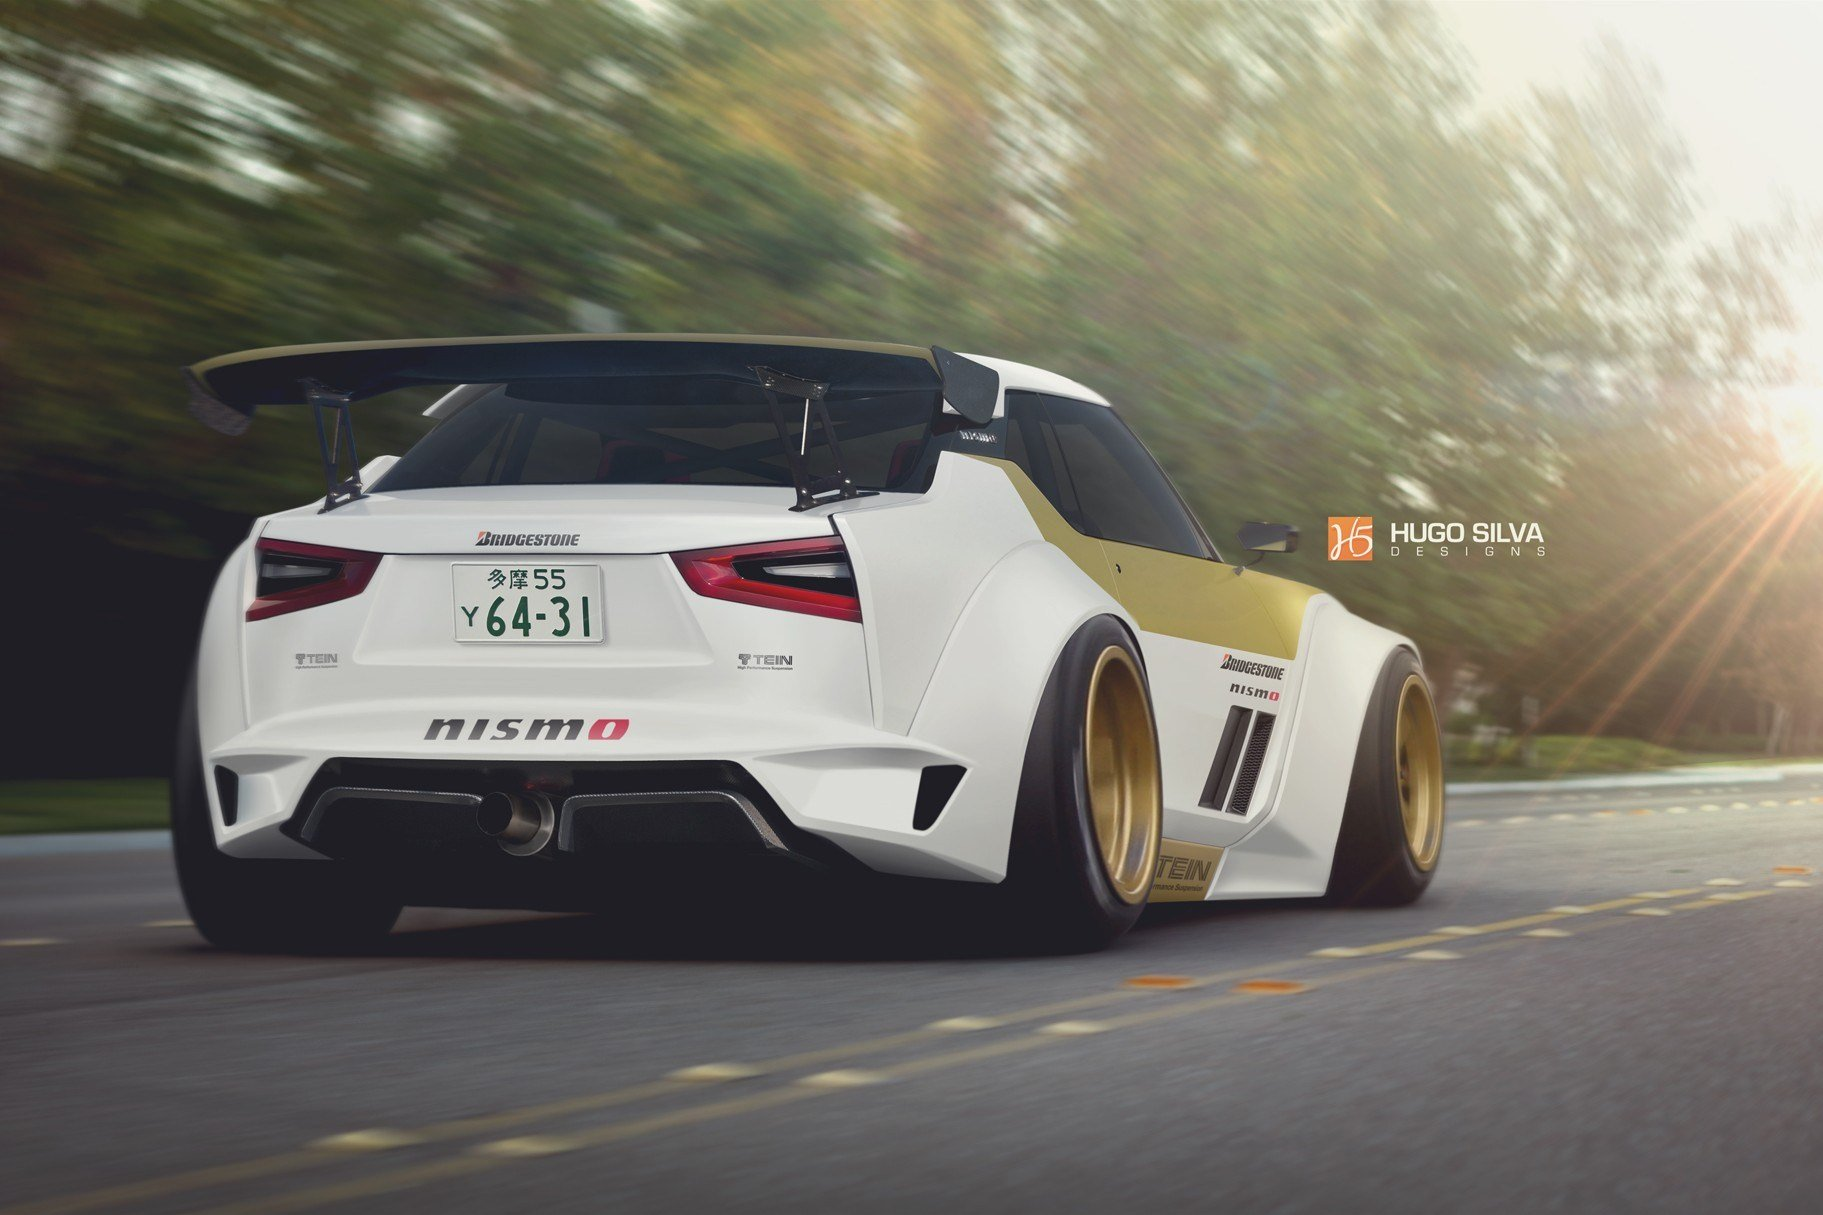 Latest Dreaming About The Idx Speedhunters Free Download